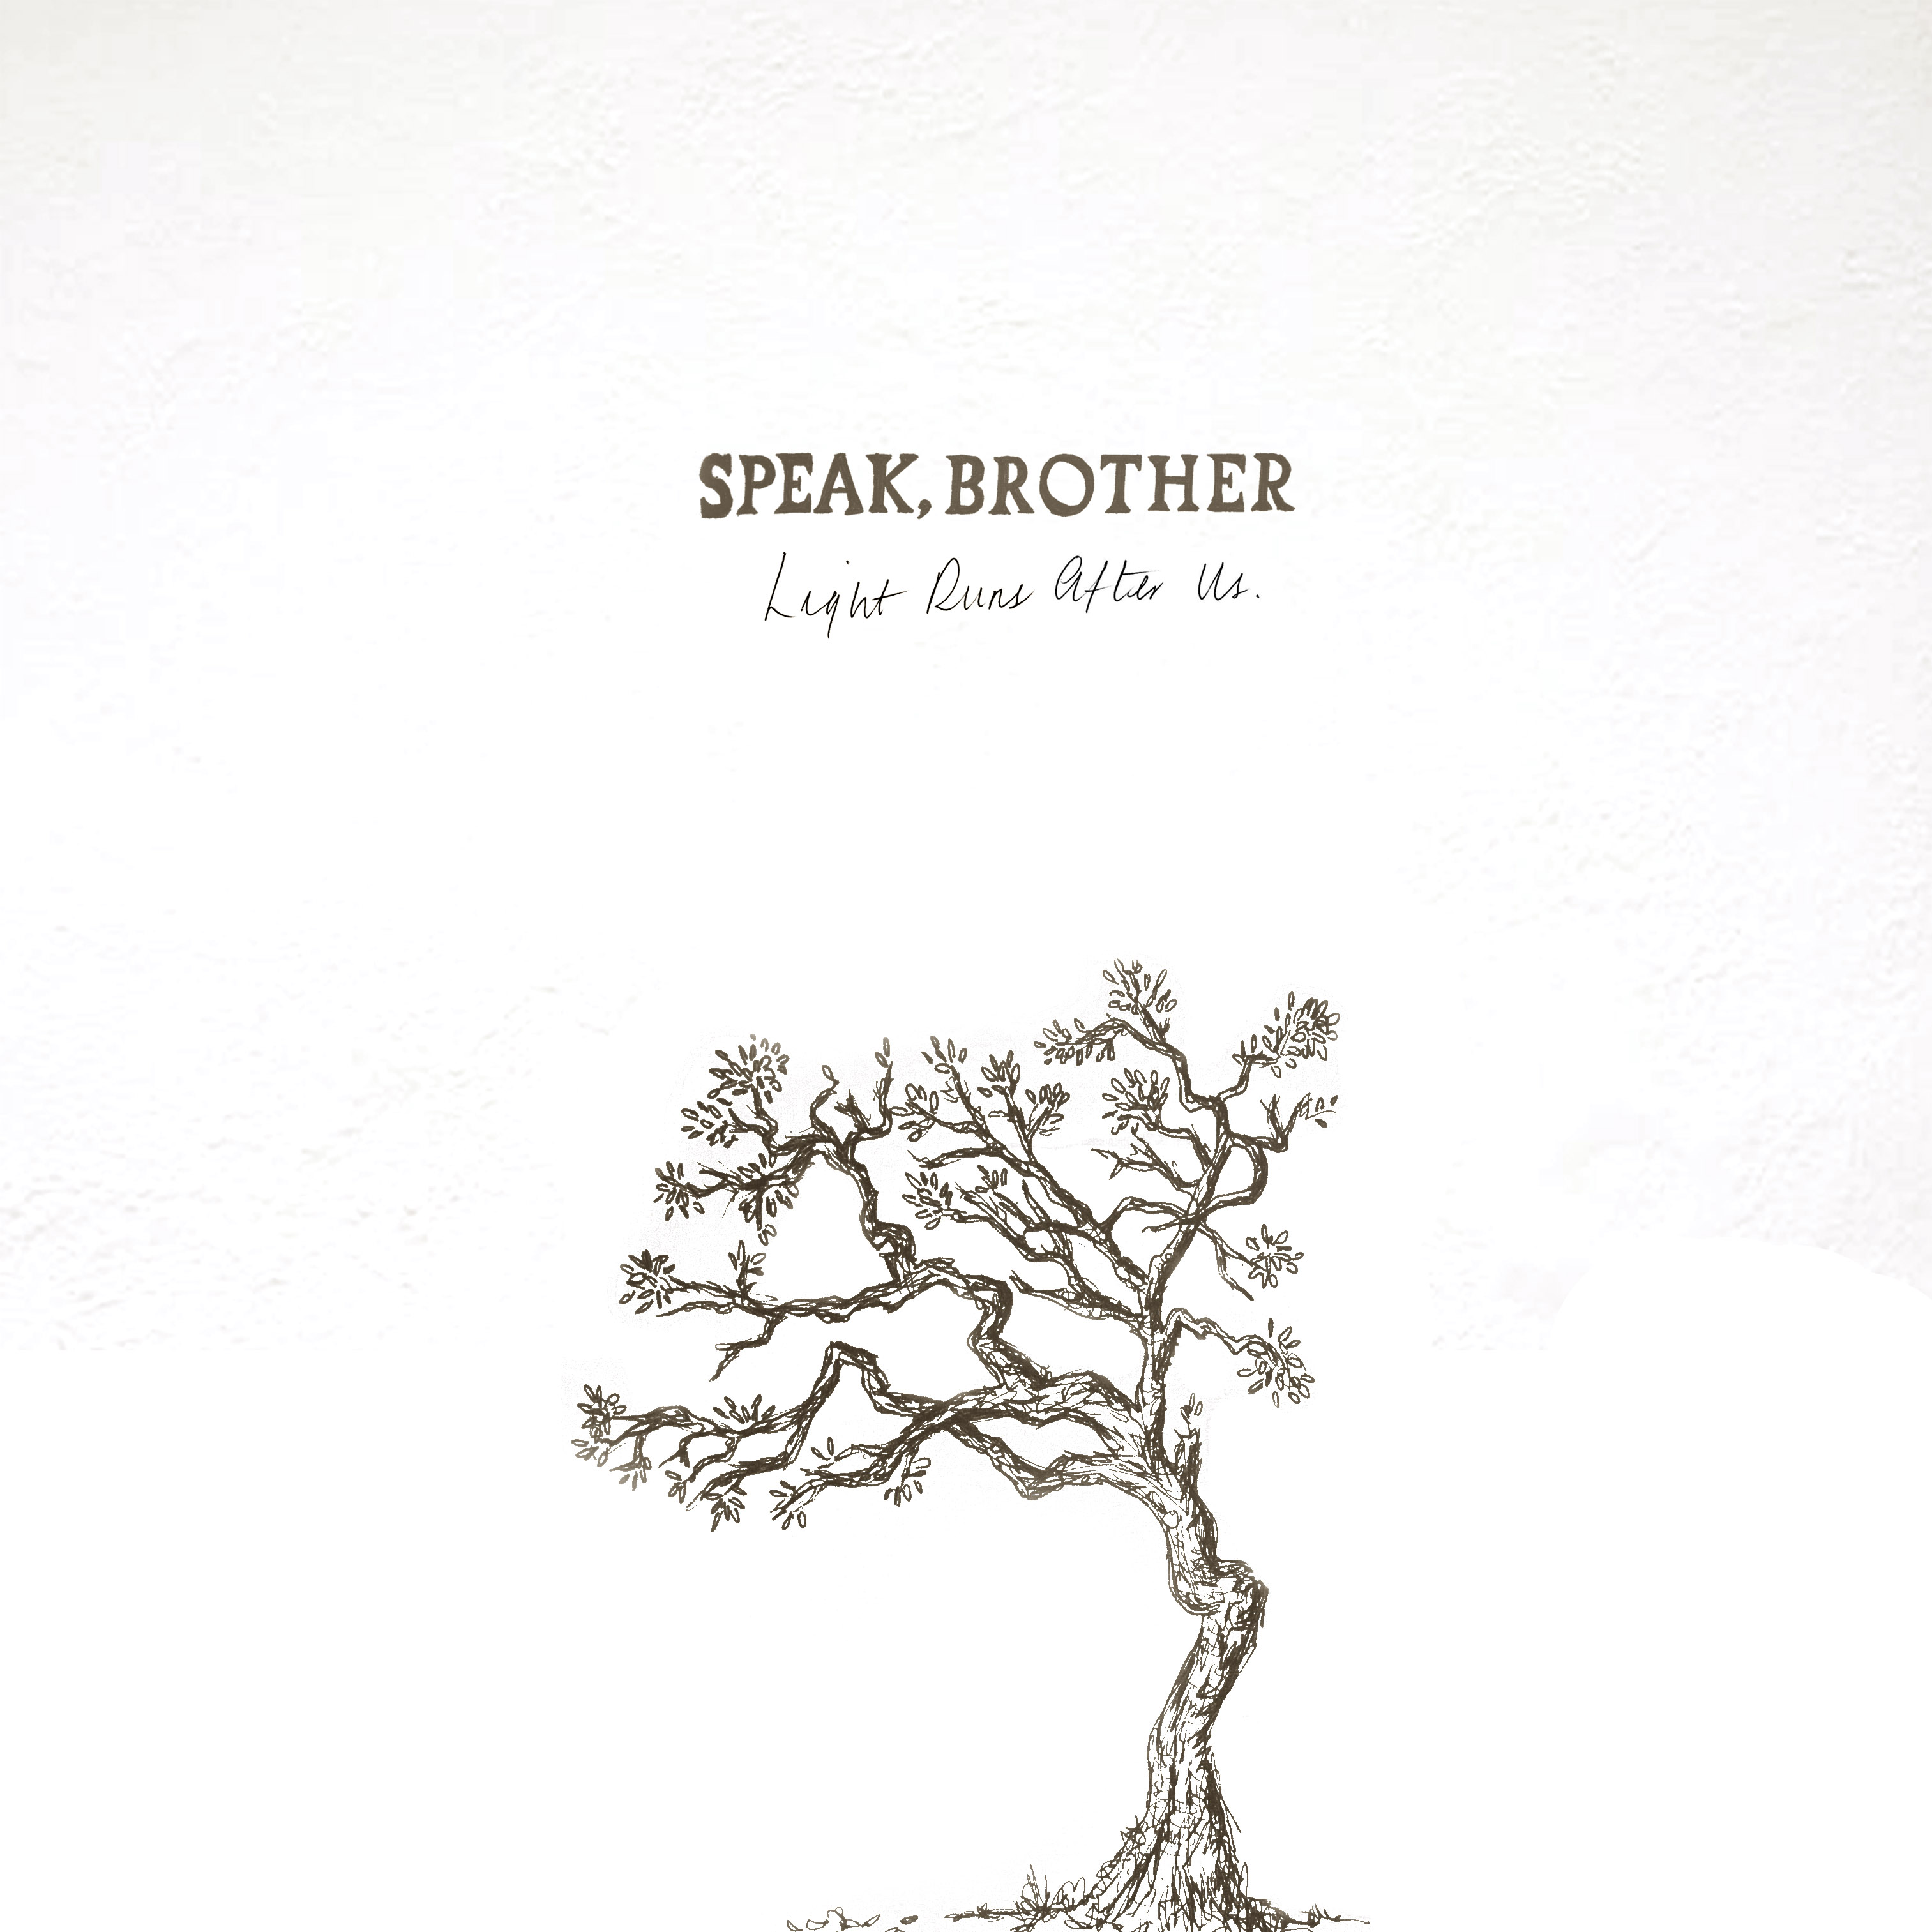 Light Runs After Us EP CD and Download - Official Speak, Brother Merchandise, Downloads and Tickets